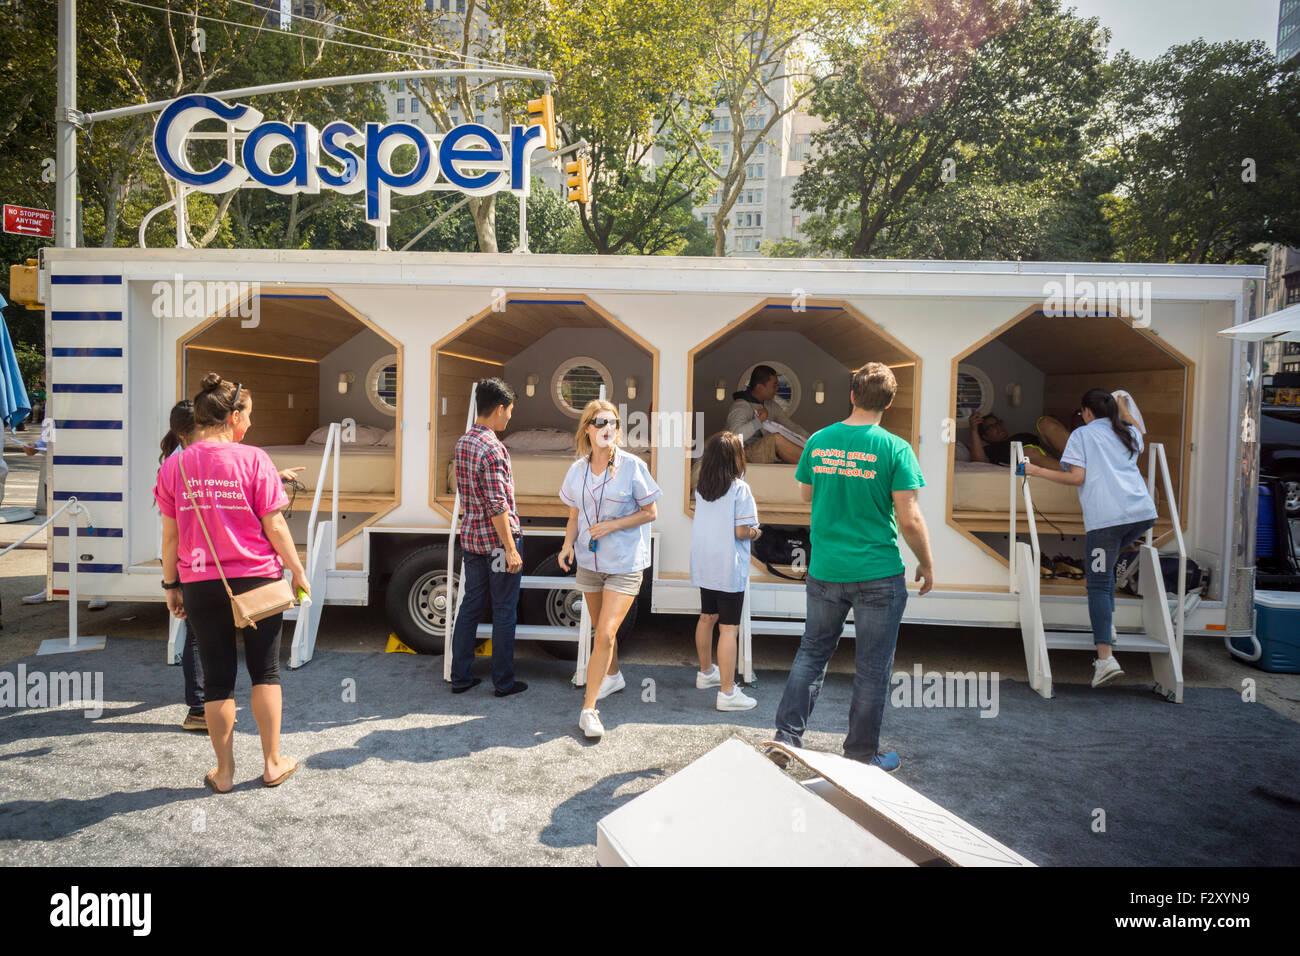 The Casper Nap Tour Promotional Trailer Equipped With